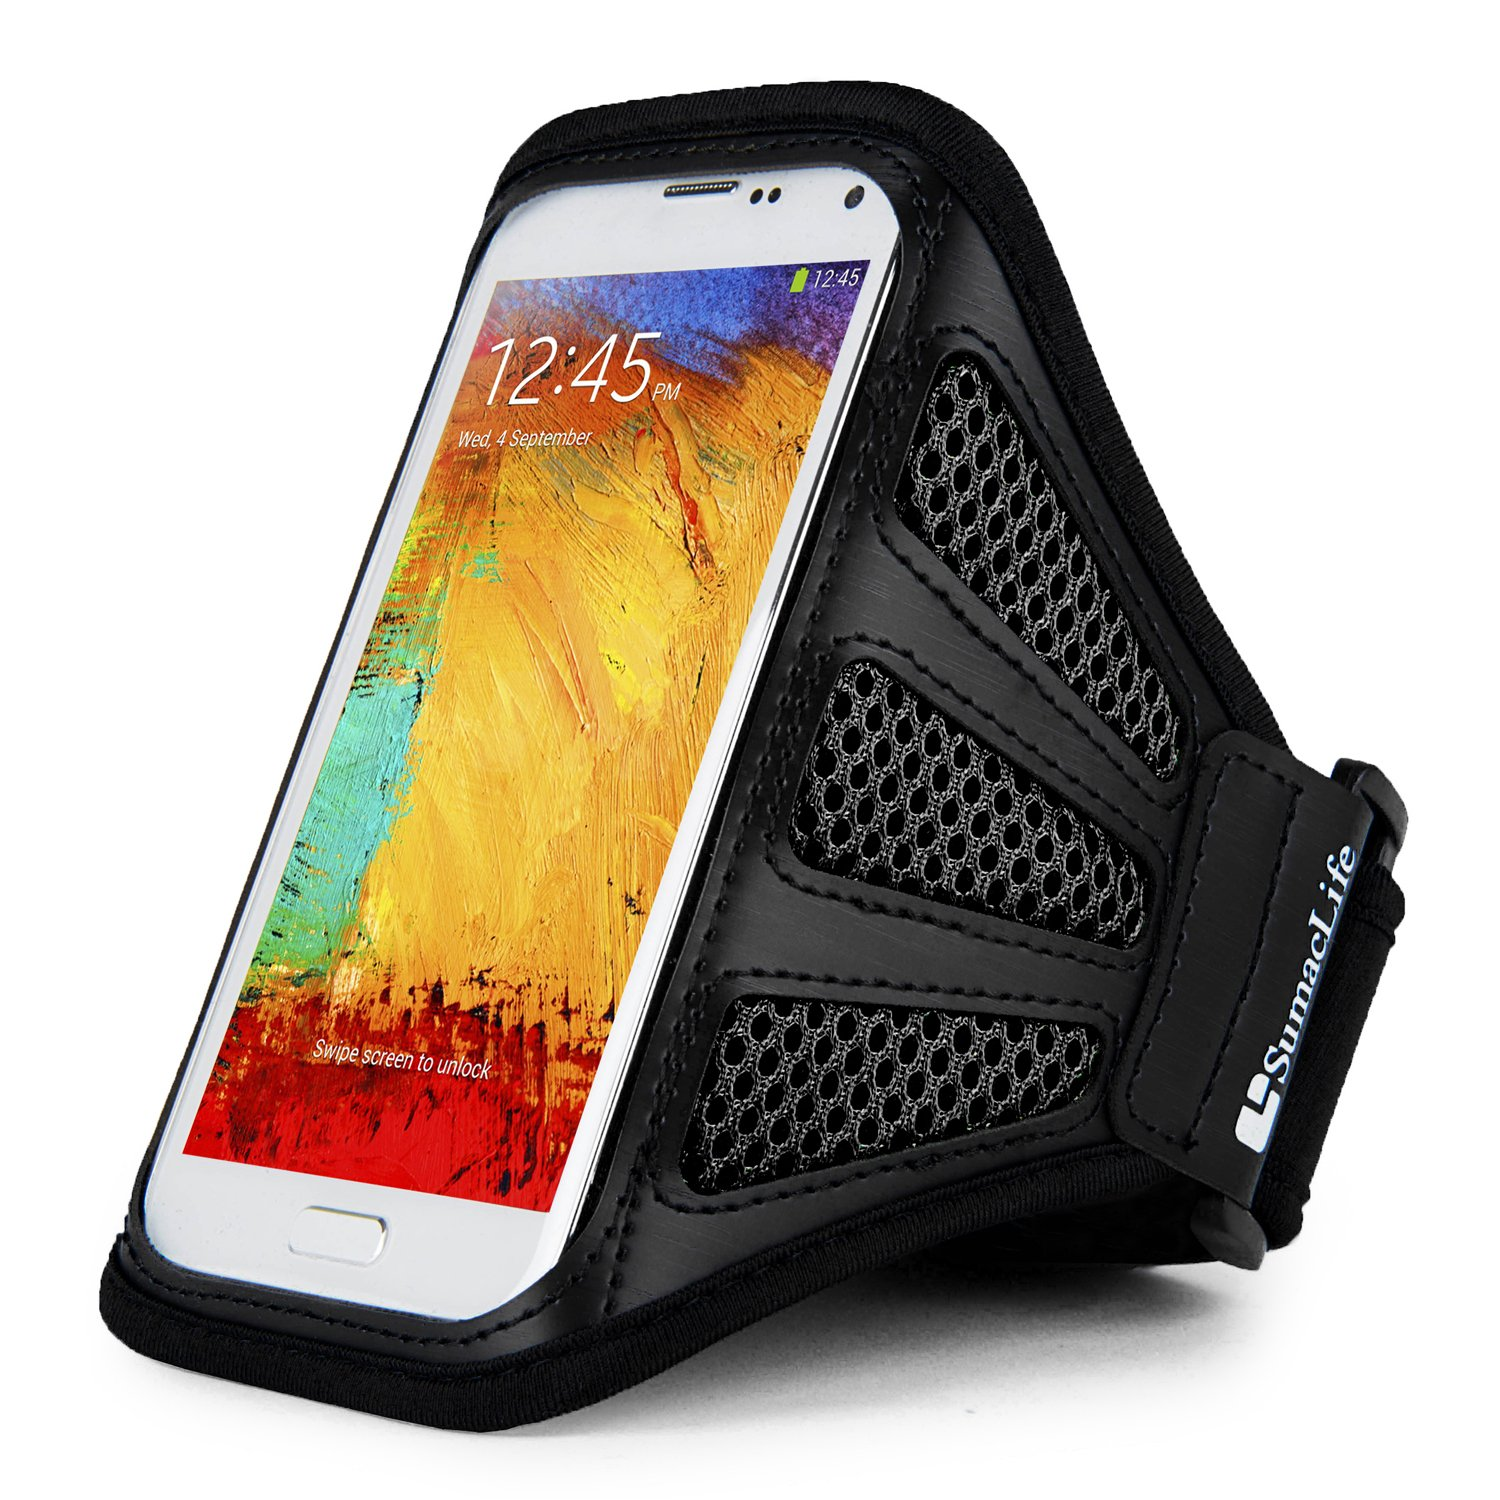 Sweat/Water Resistant Black Mesh Workout Armband Suitable for BLU Vivo/Studio/Life/Grand/Dash/Neo Series Smartphones 5.5'' to 6inch